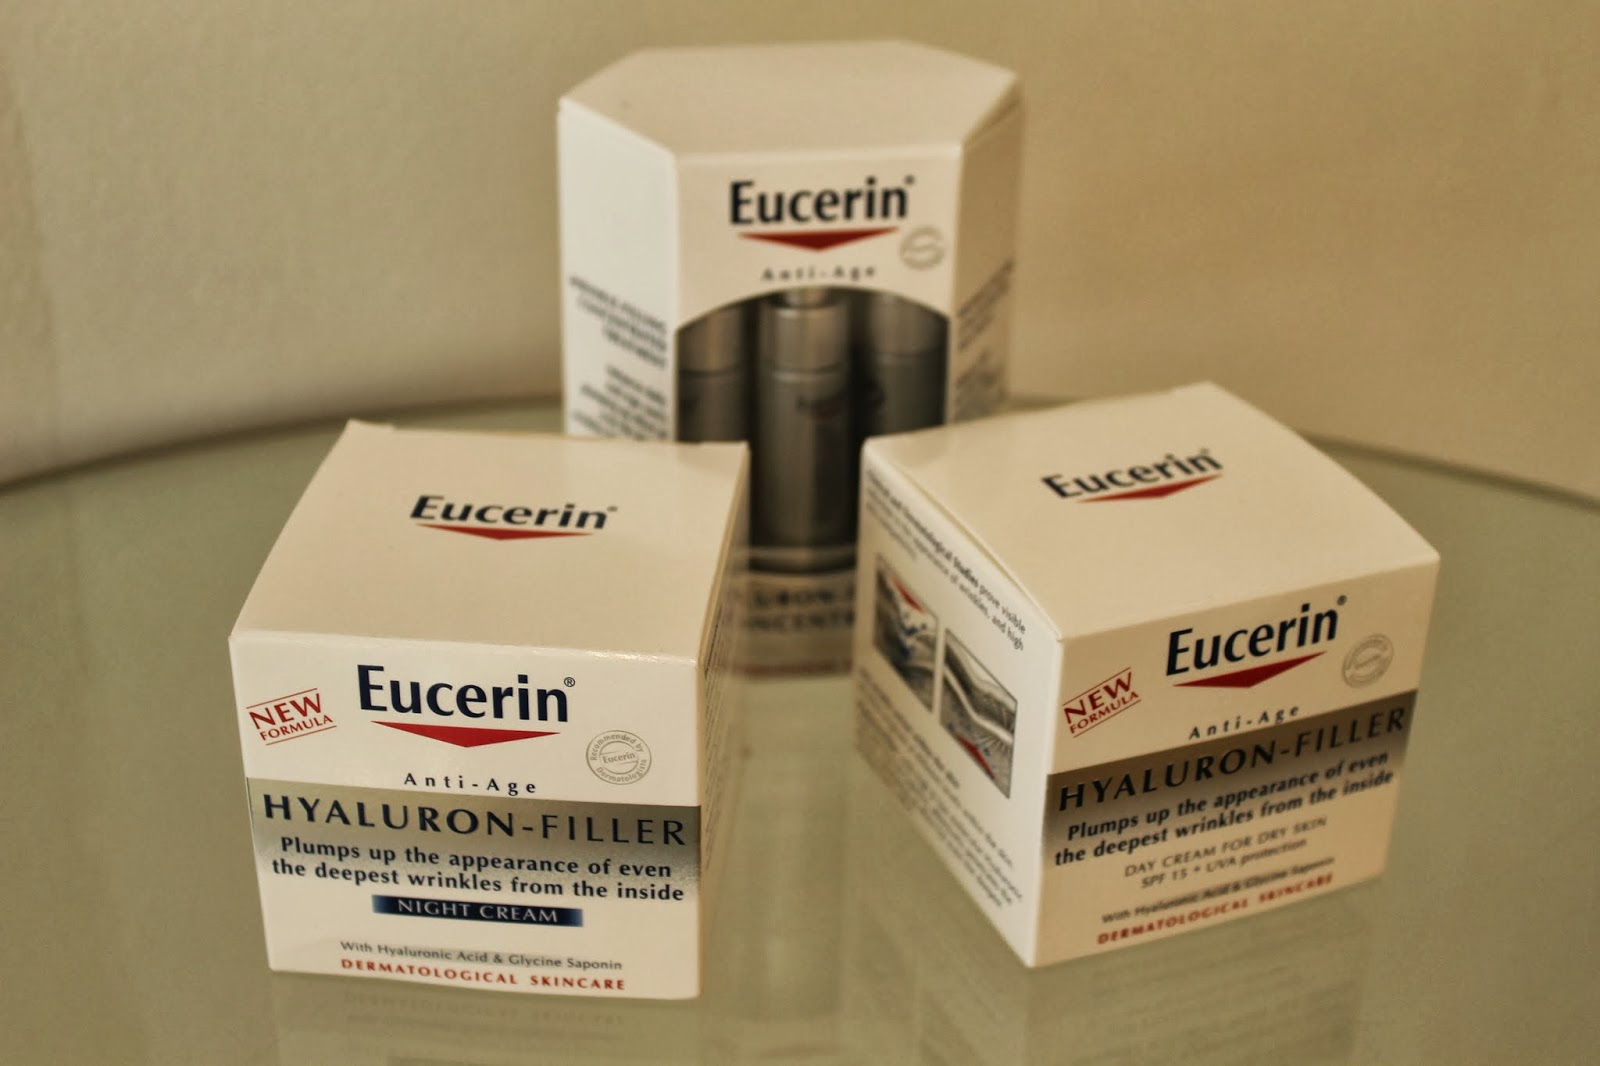 fiocco bianco  review  eucerin hyaluron filler products